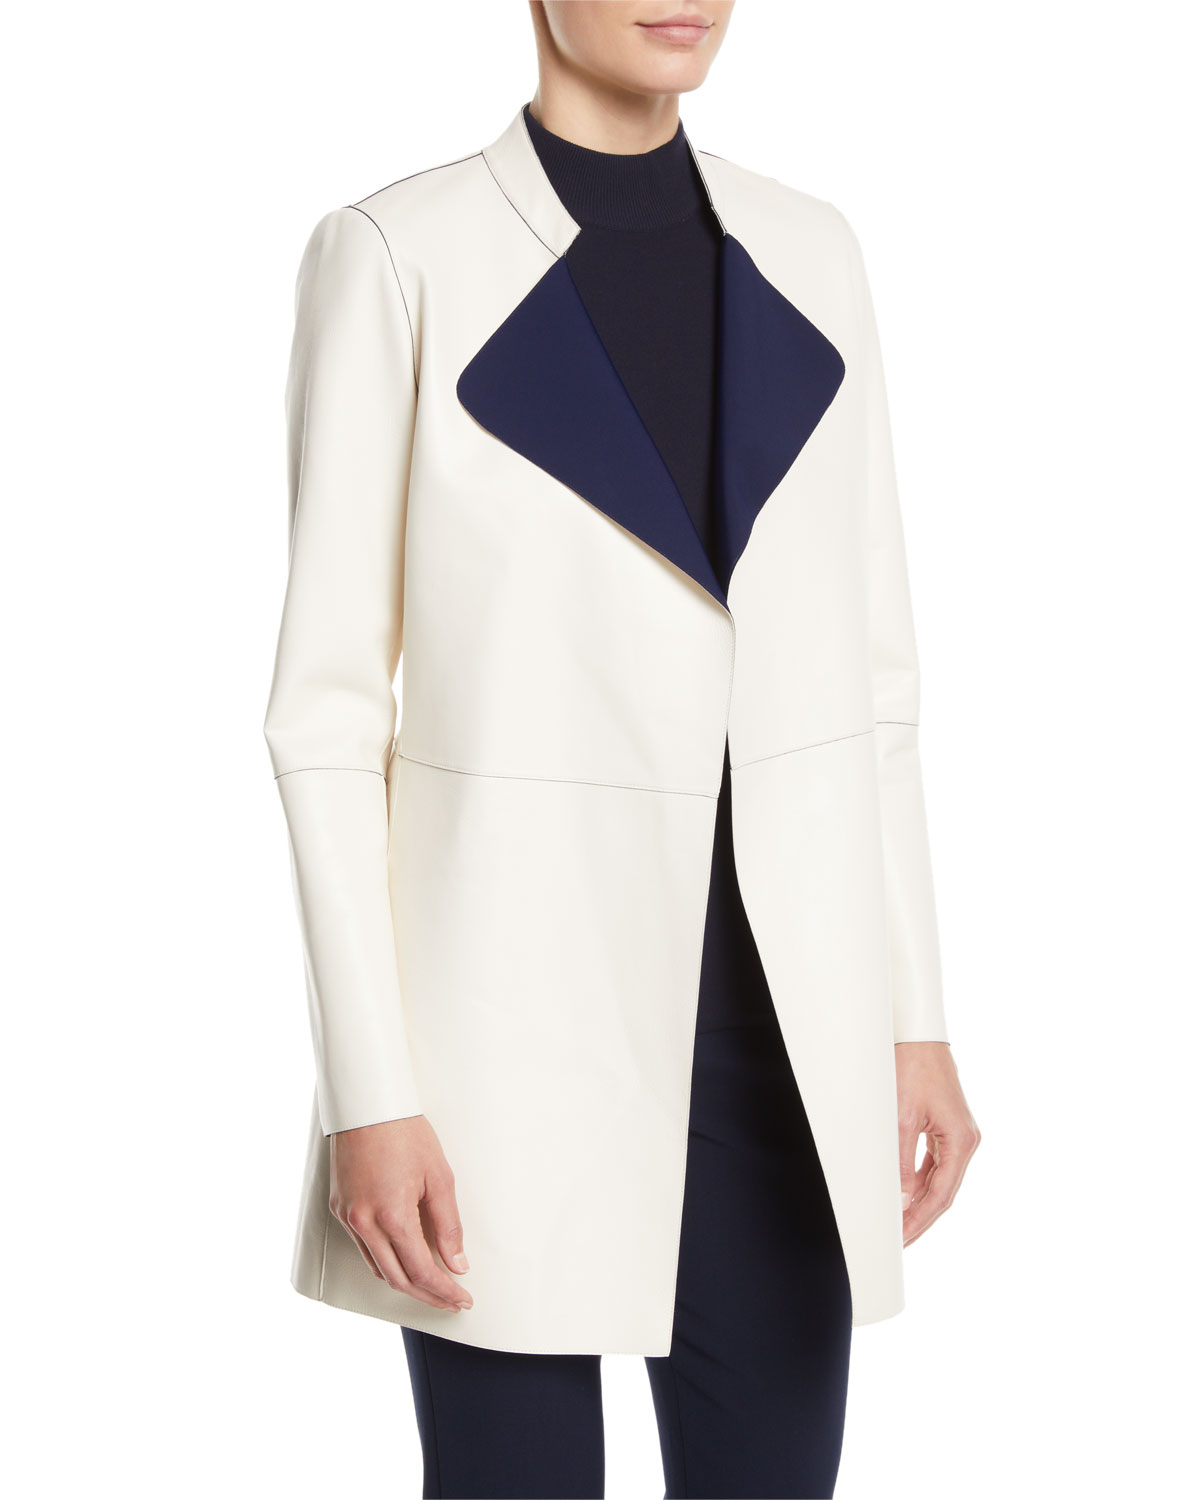 Bonded Nappa Leather Reversible Jacket in Alabaster/ Navy